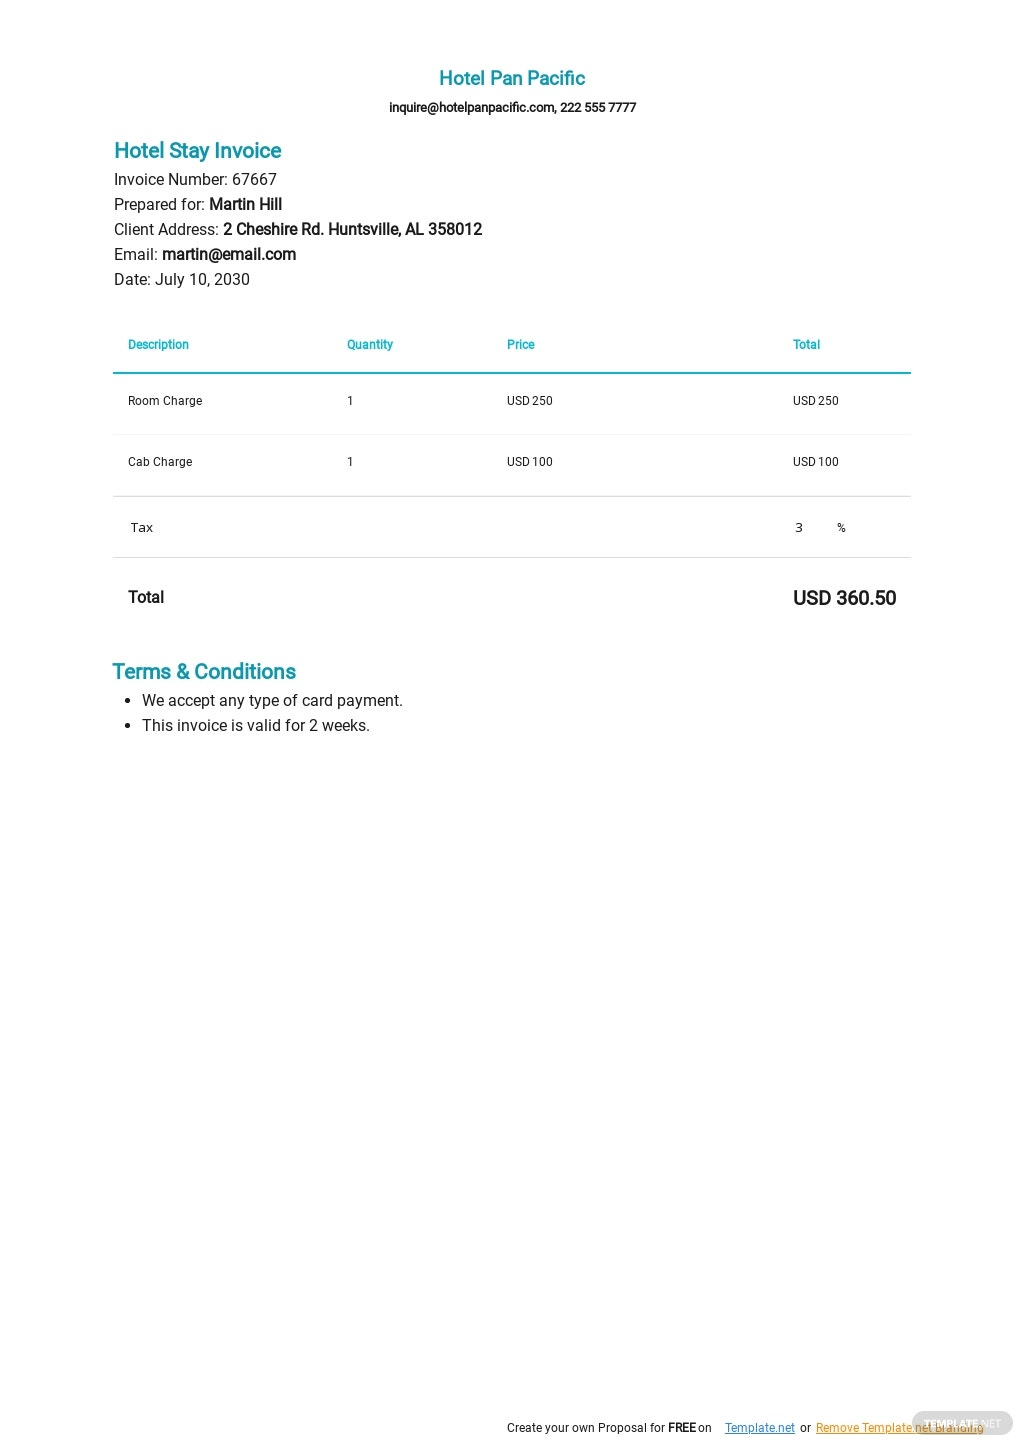 Hotel Stay Invoice Template.jpe